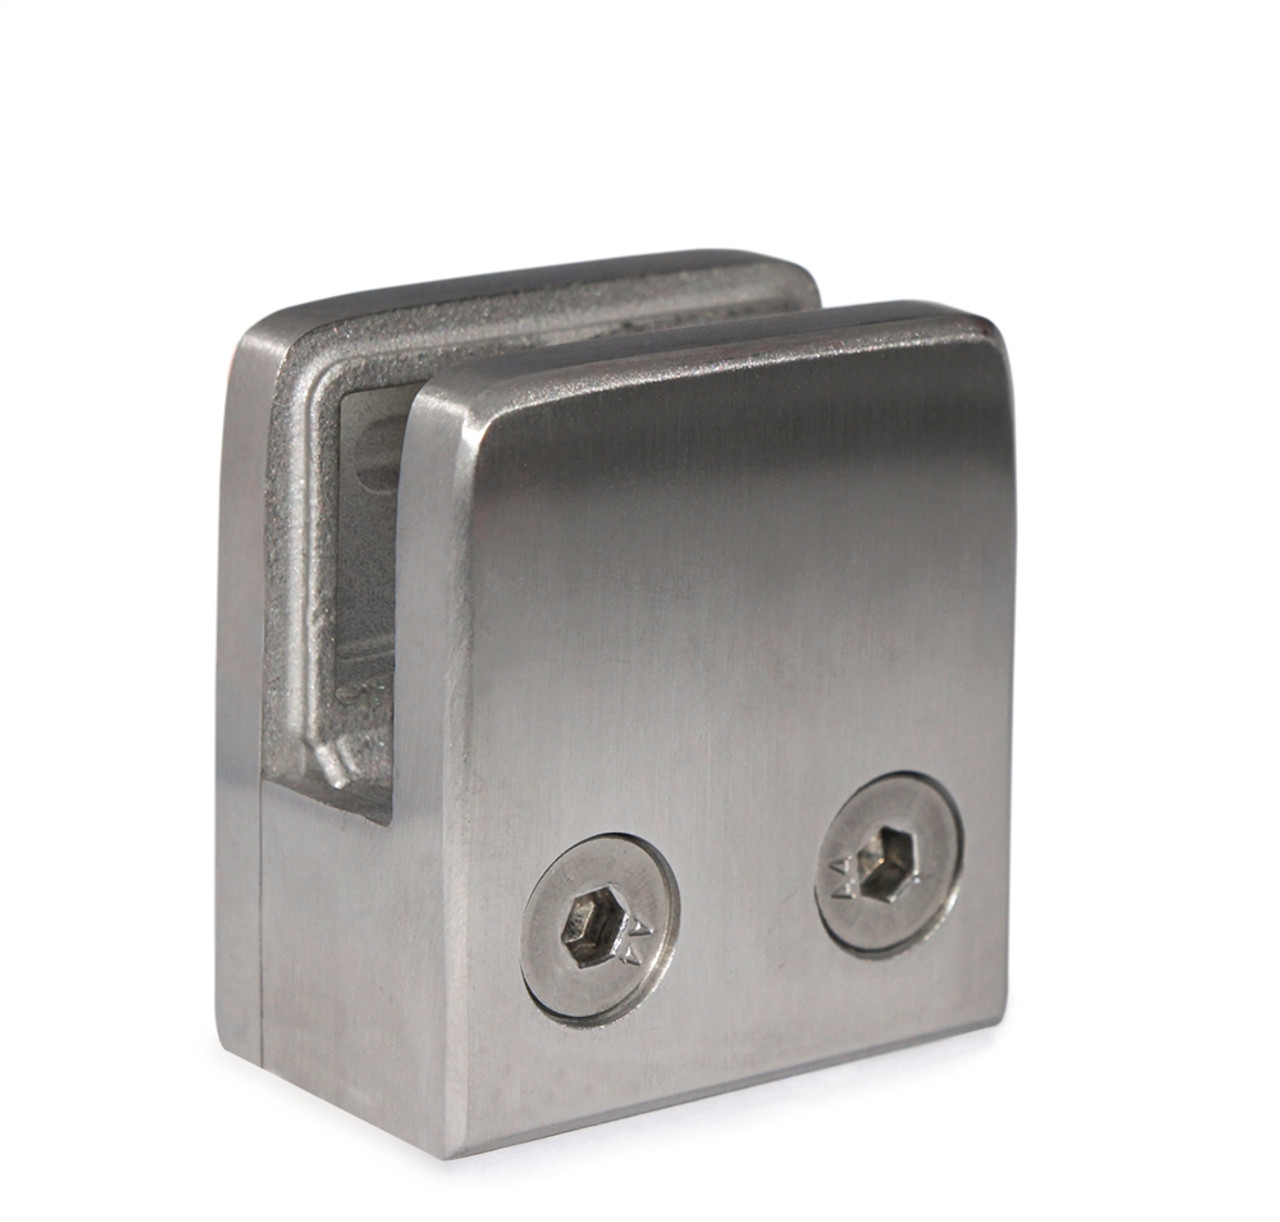 """E11100000 Stainless Steel Glass Clamp 1 3/4"""" x 1 3/4"""" x 1 3/32"""" for Flat Tube"""